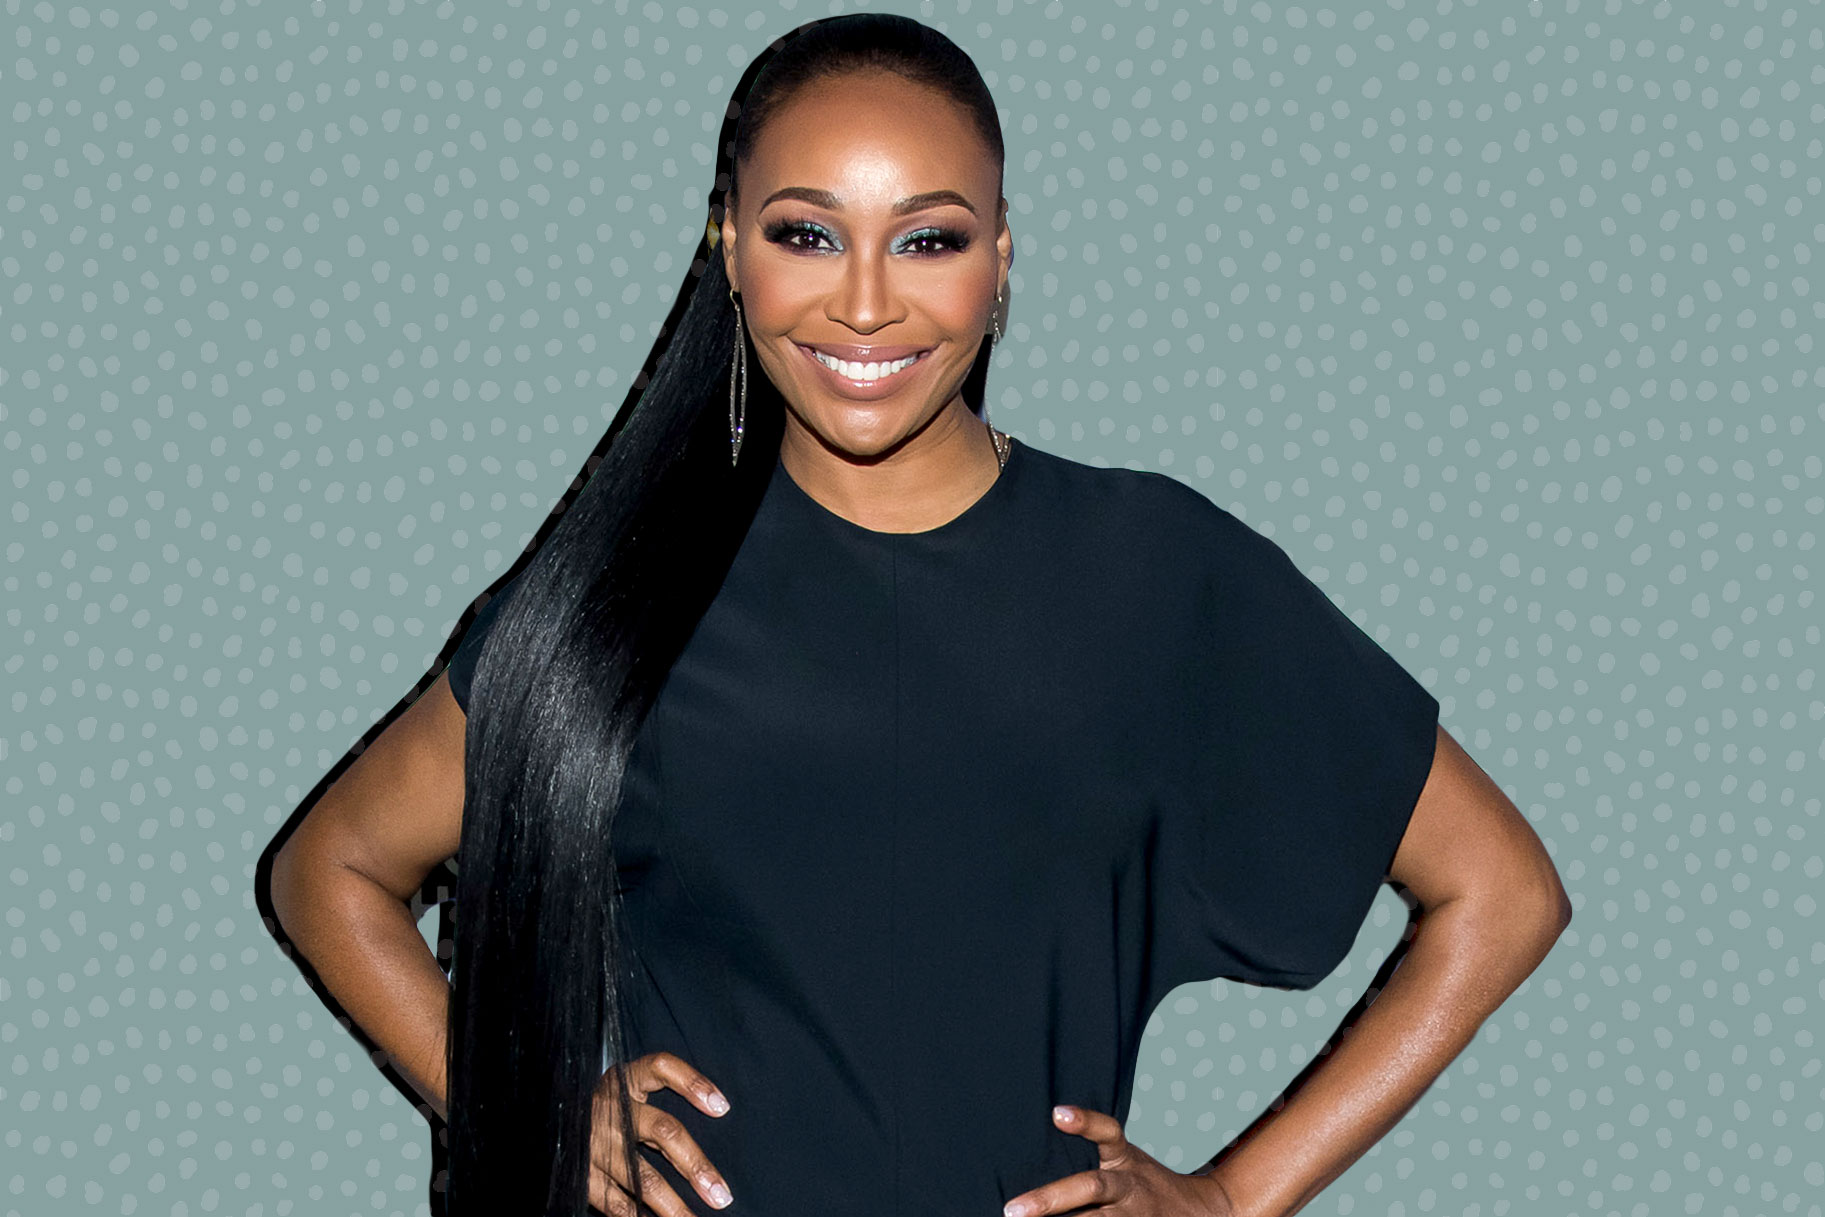 Cynthia Bailey Tells Fans That It's Not About Getting Older, But Getting Better